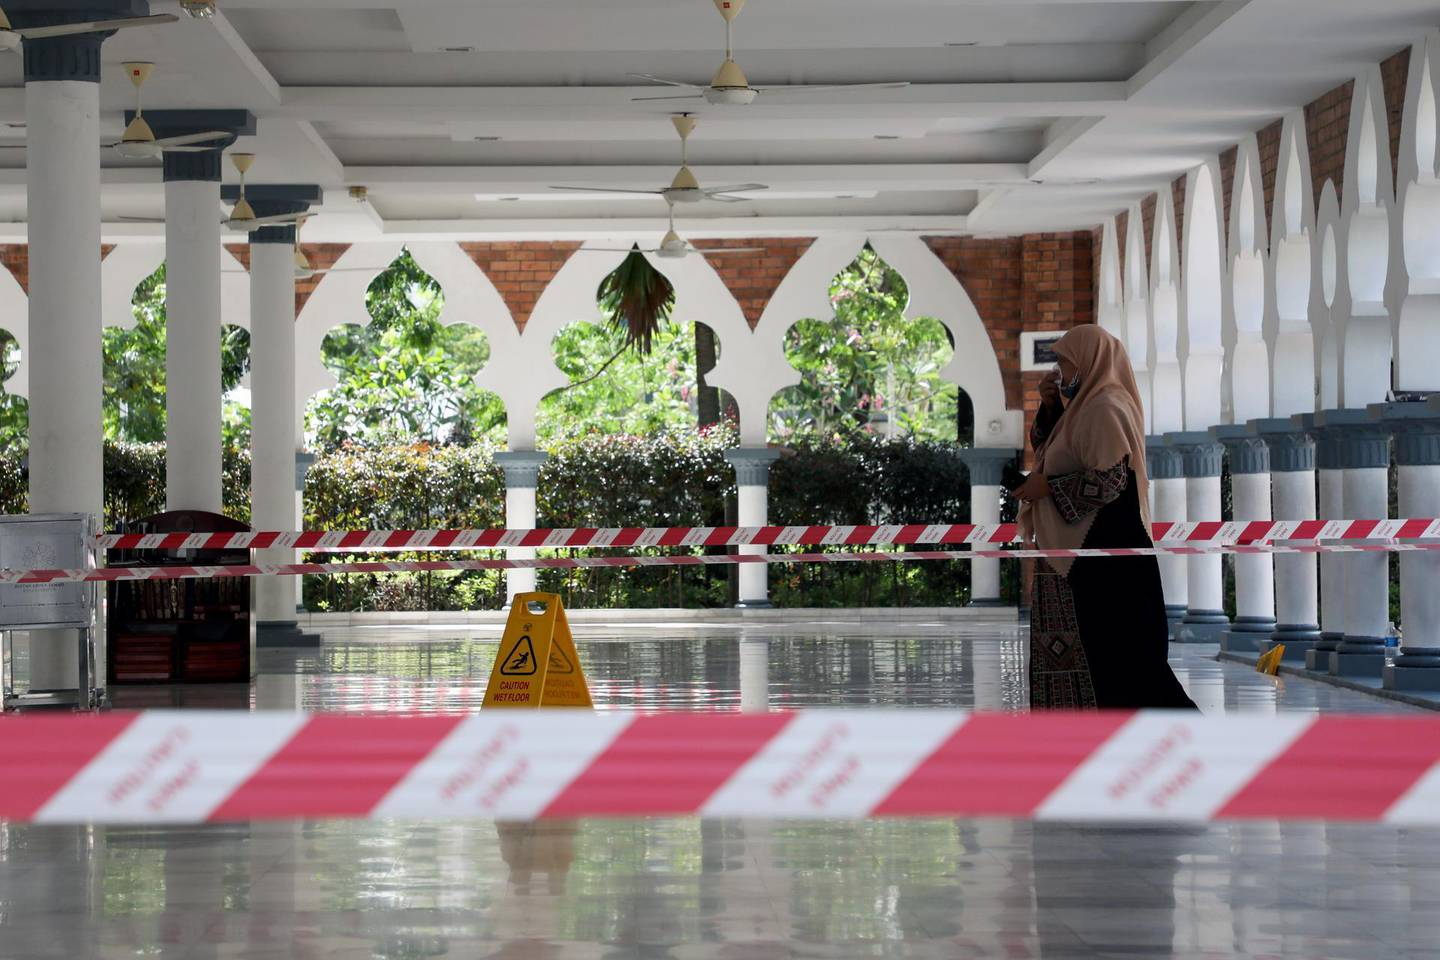 A woman wearing a protective mask walks at a mosque following the outbreak of coronavirus, in Kuala Lumpur, Malaysia March 16, 2020. REUTERS/Lim Huey Teng